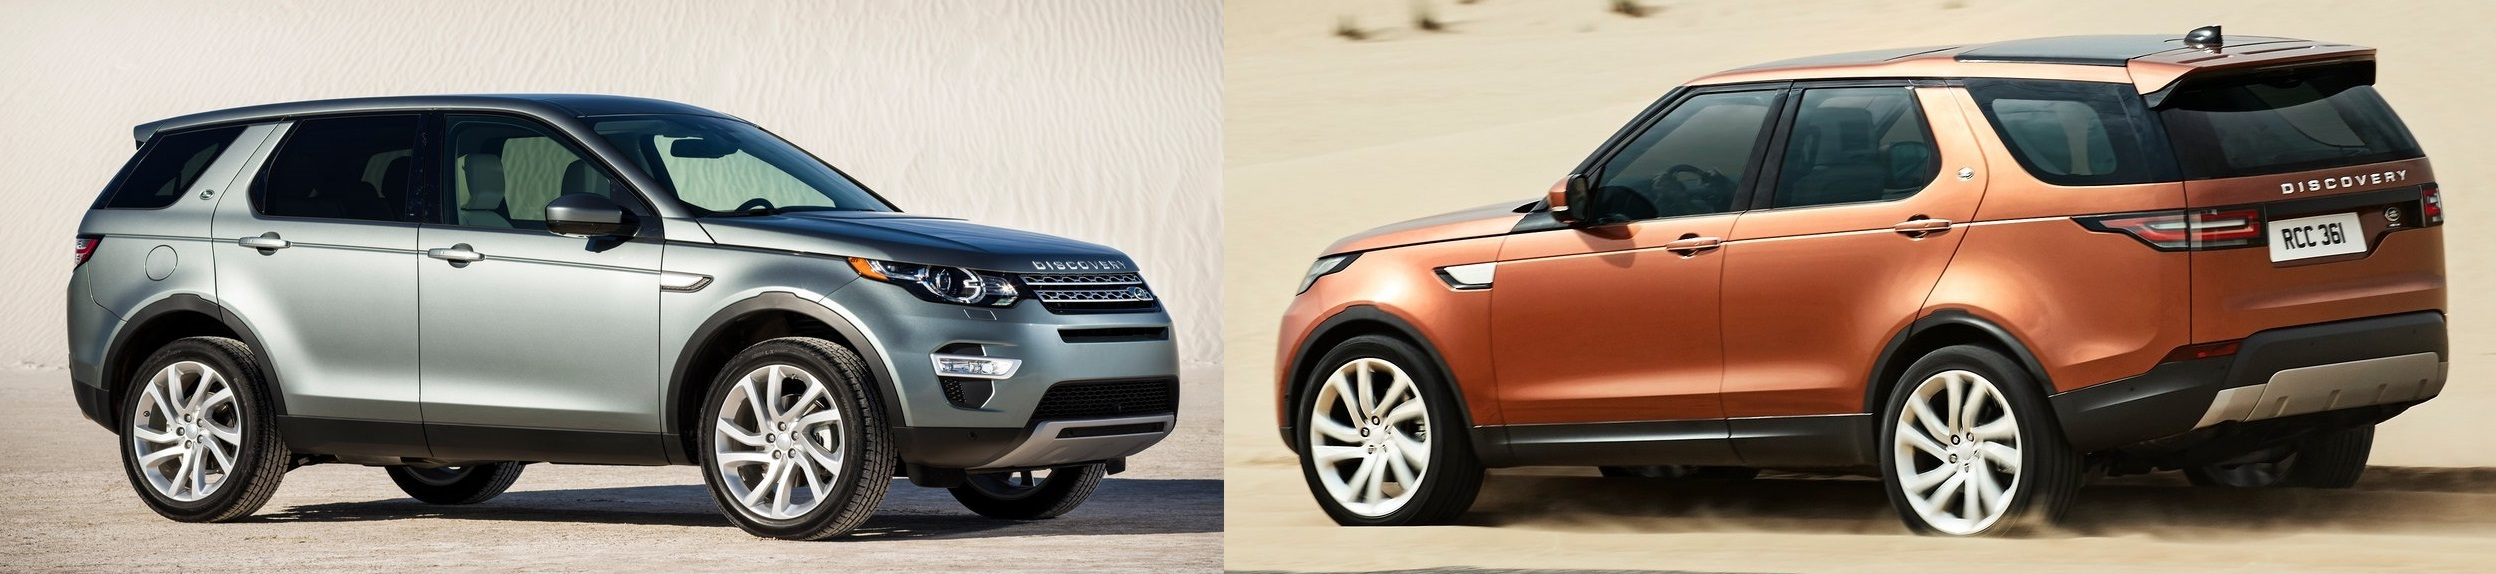 land_rover-discovery-sport-new-discovery